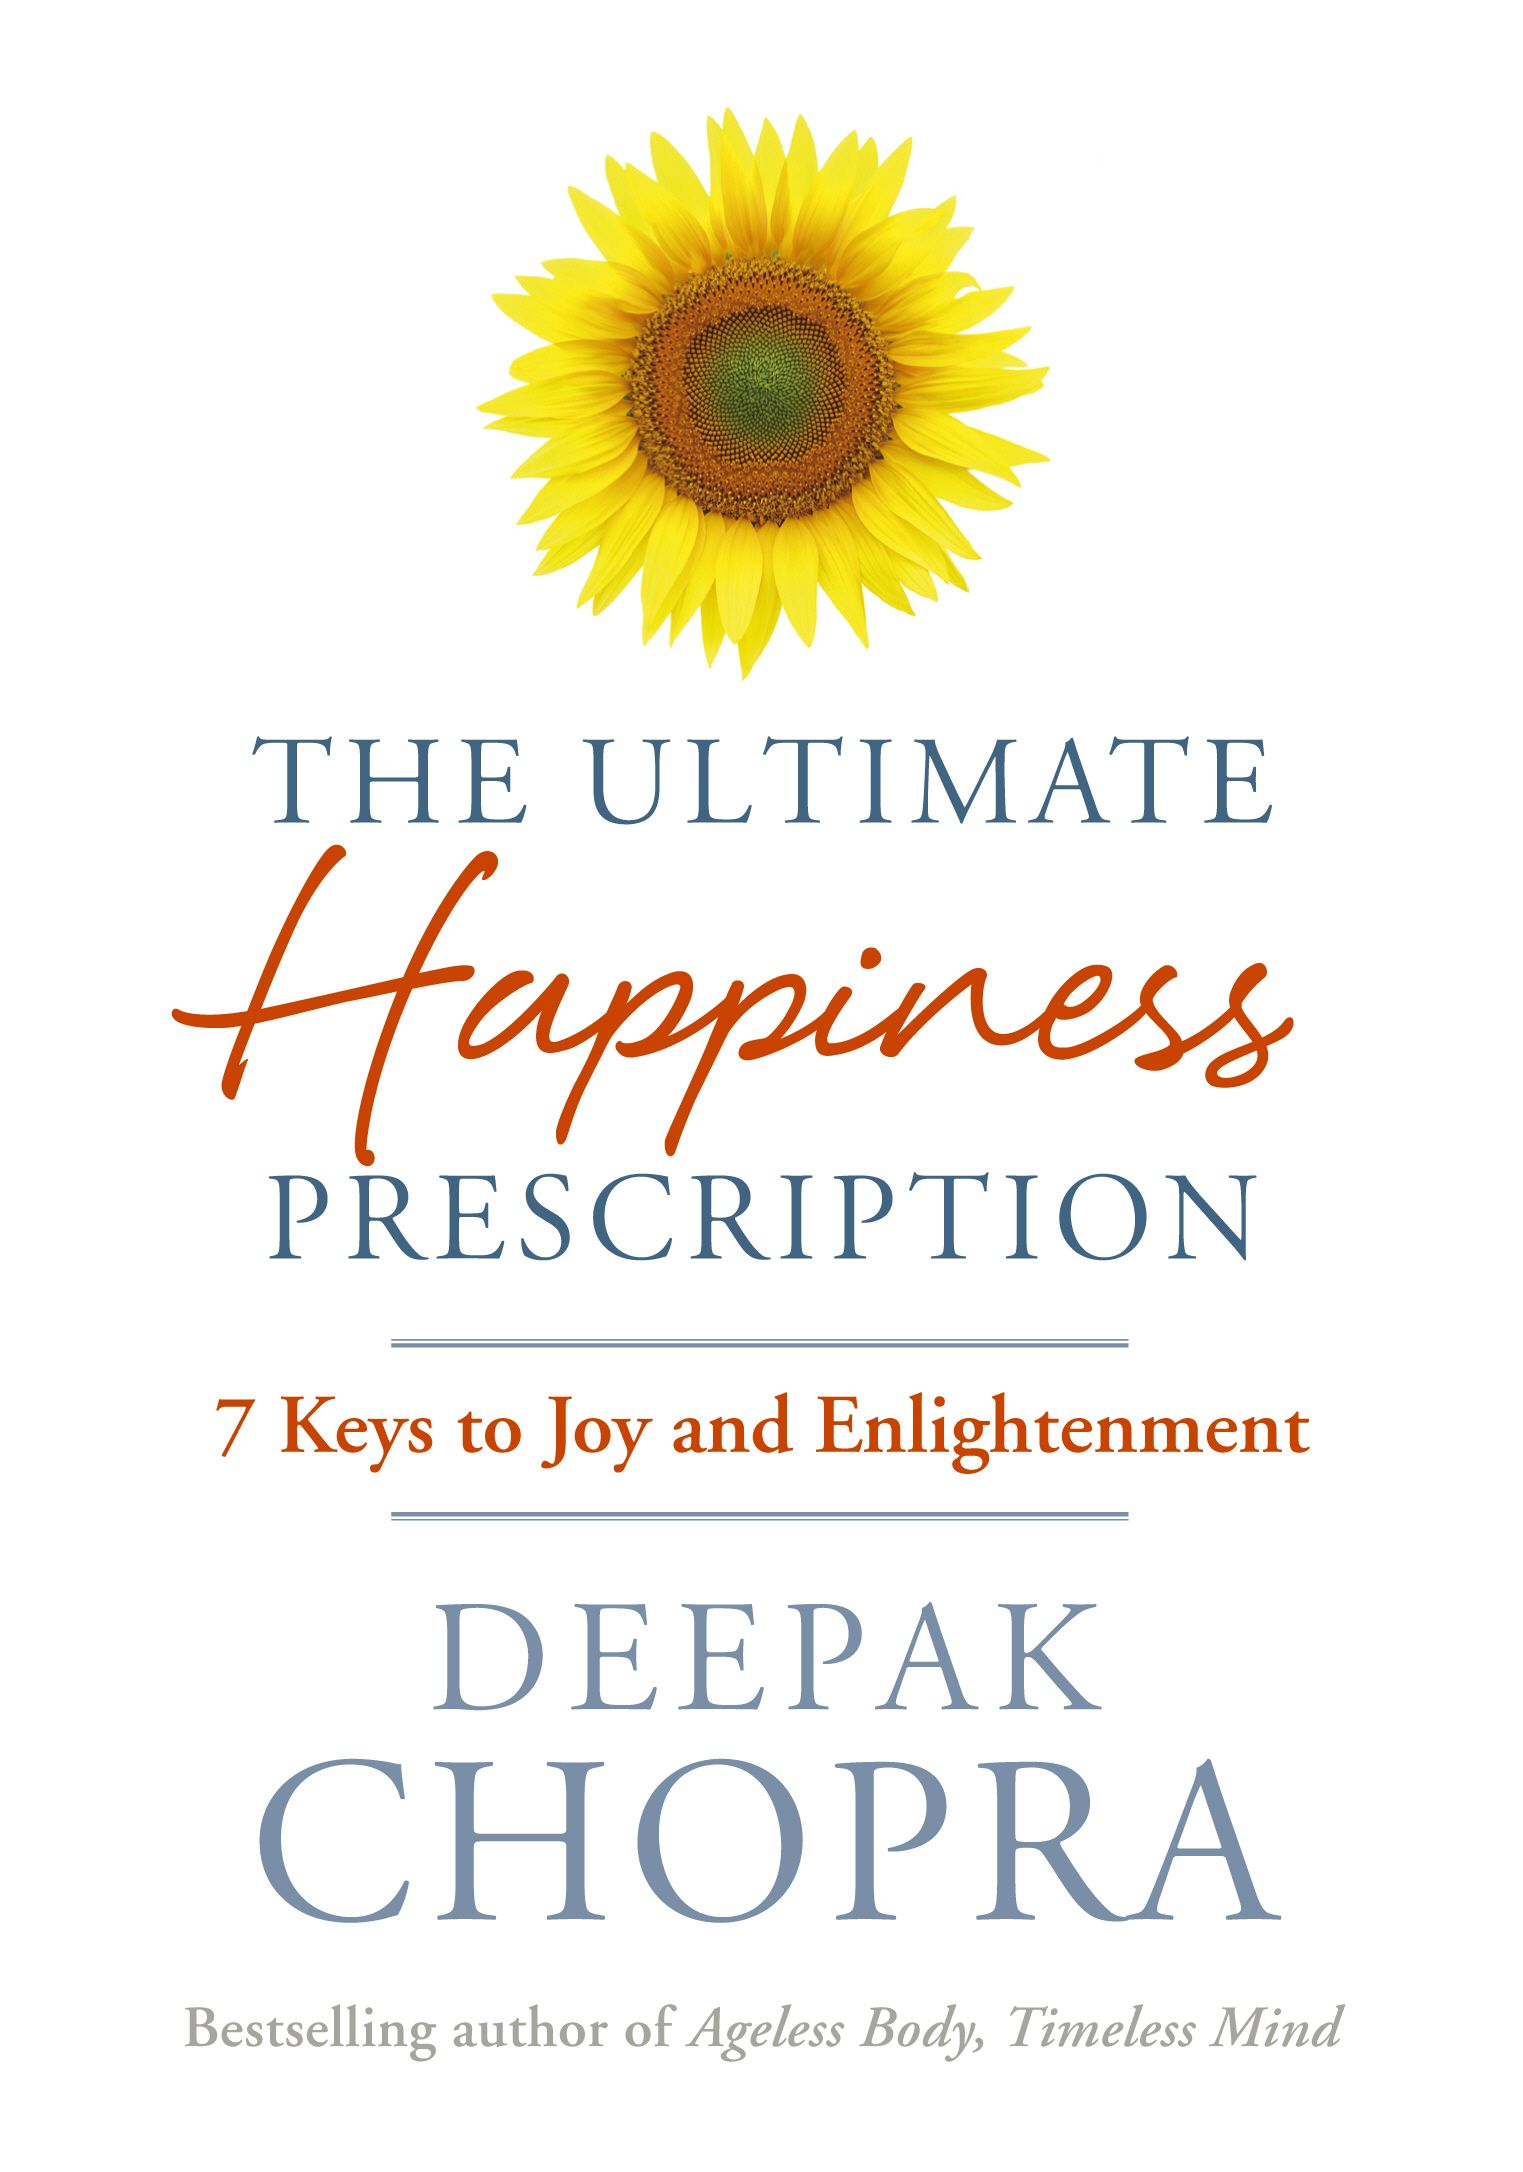 The Ultimate Happiness Prescription 7 Keys to Joy and Enlightenment